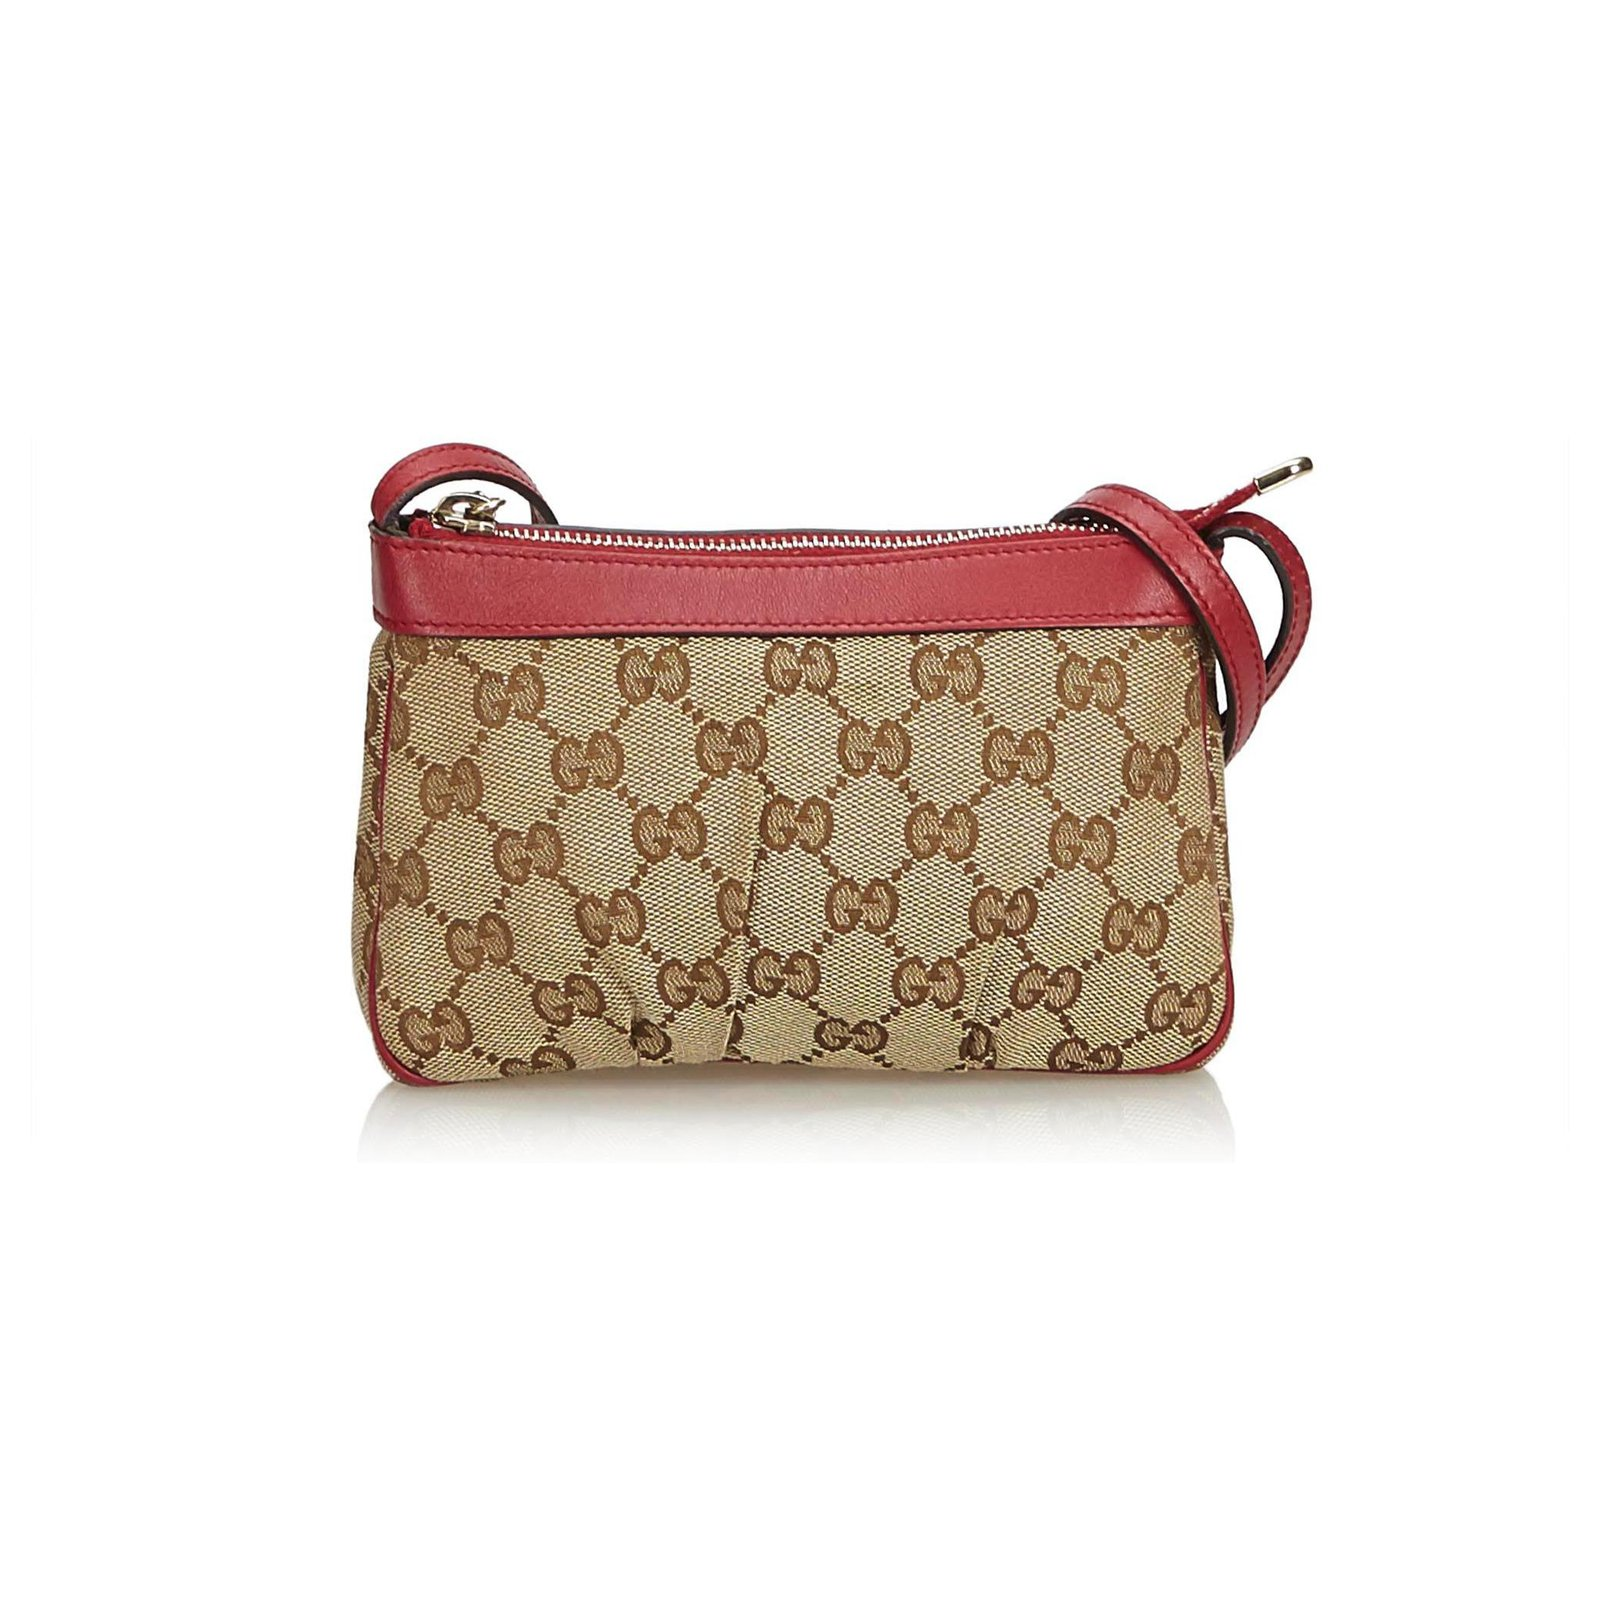 9dc94a474 Gucci Gucci Brown GG Jacquard Crossbody Bag Handbags Leather,Other,Cloth  Brown,Red